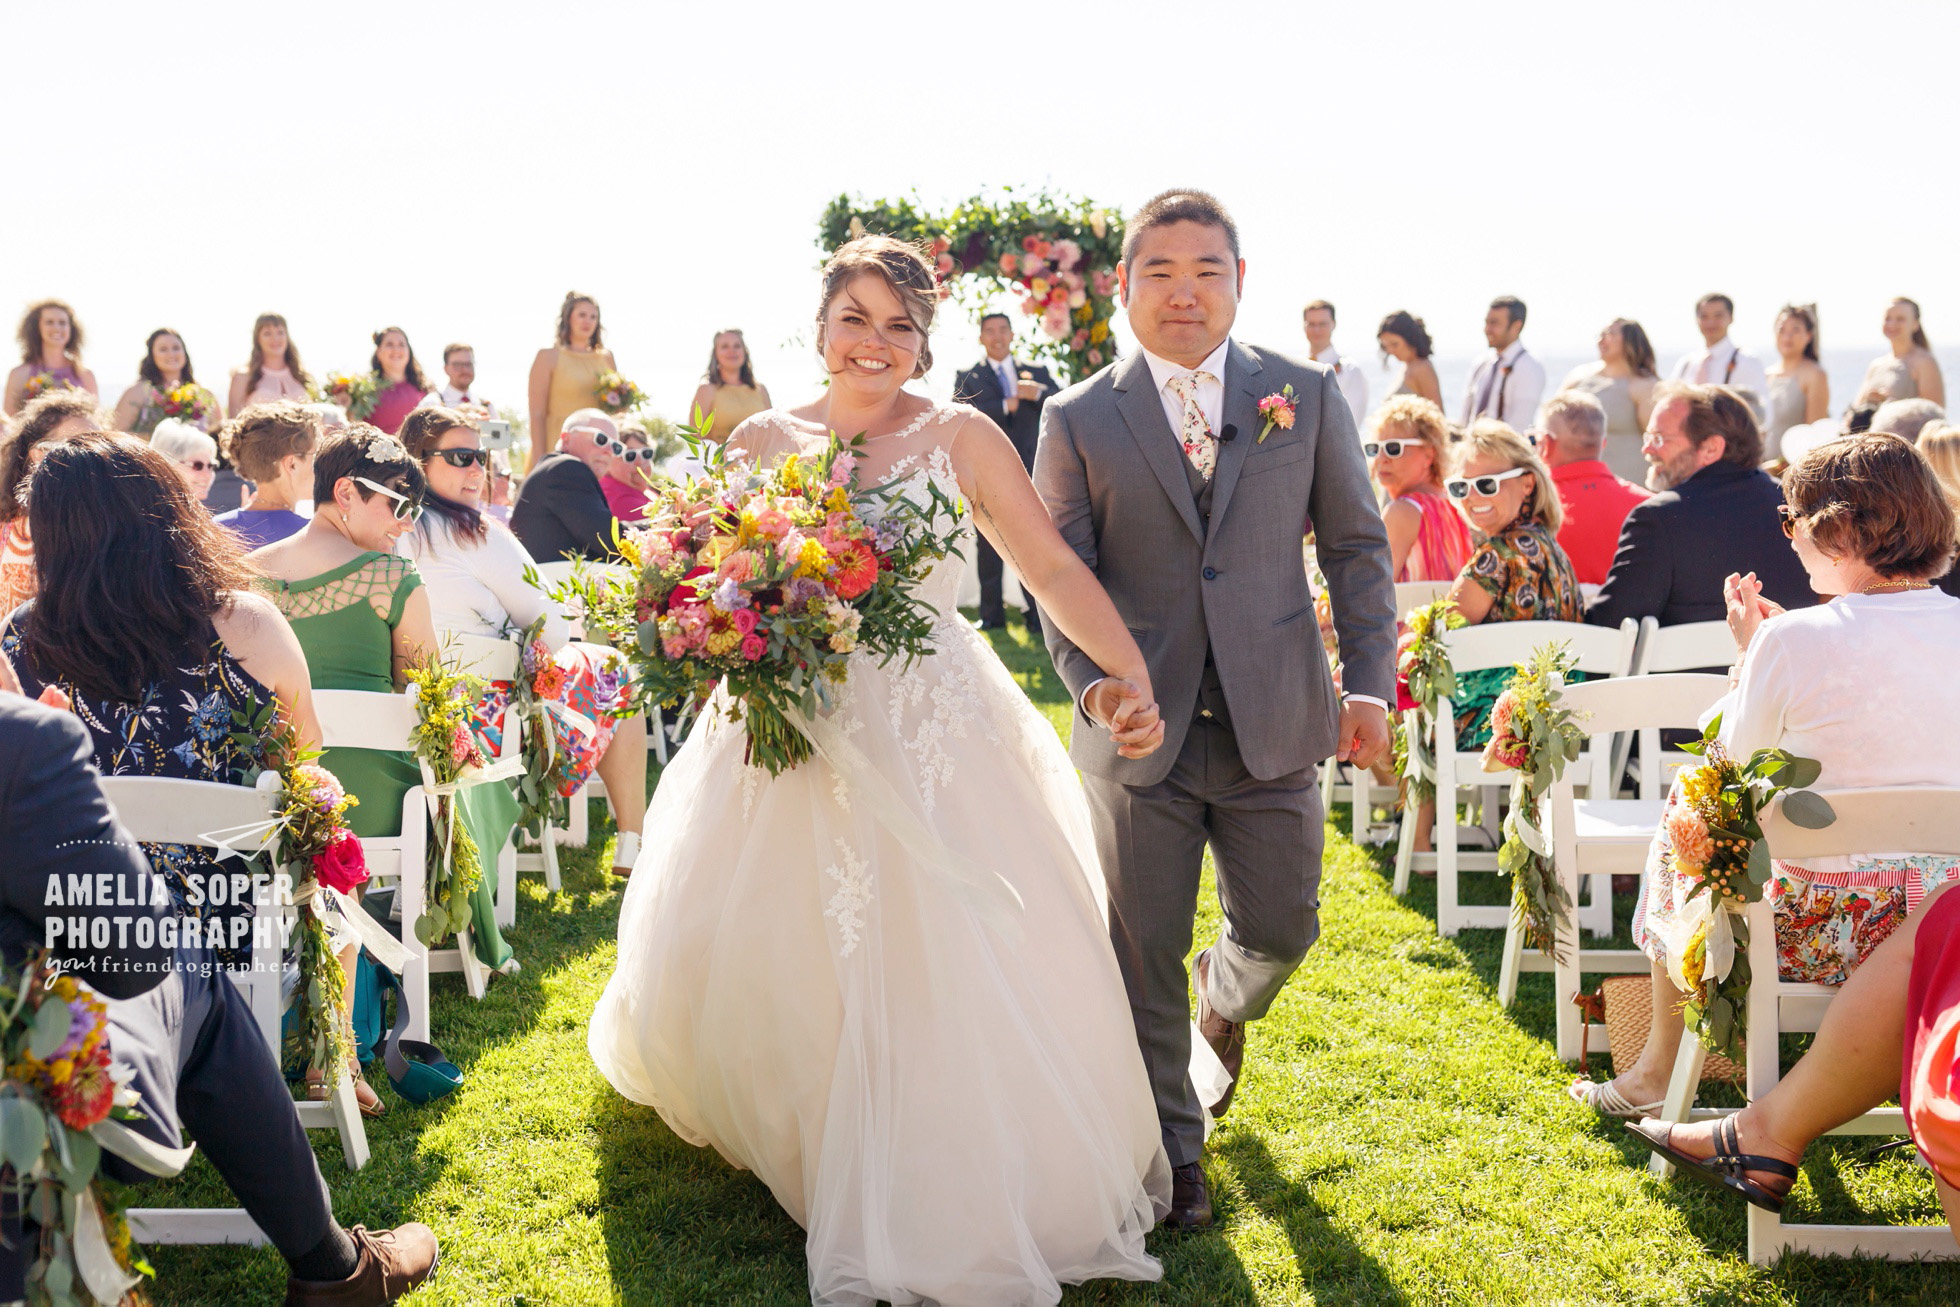 Destination wedding at Semiahmoo resort in Blaine, Washington PNW